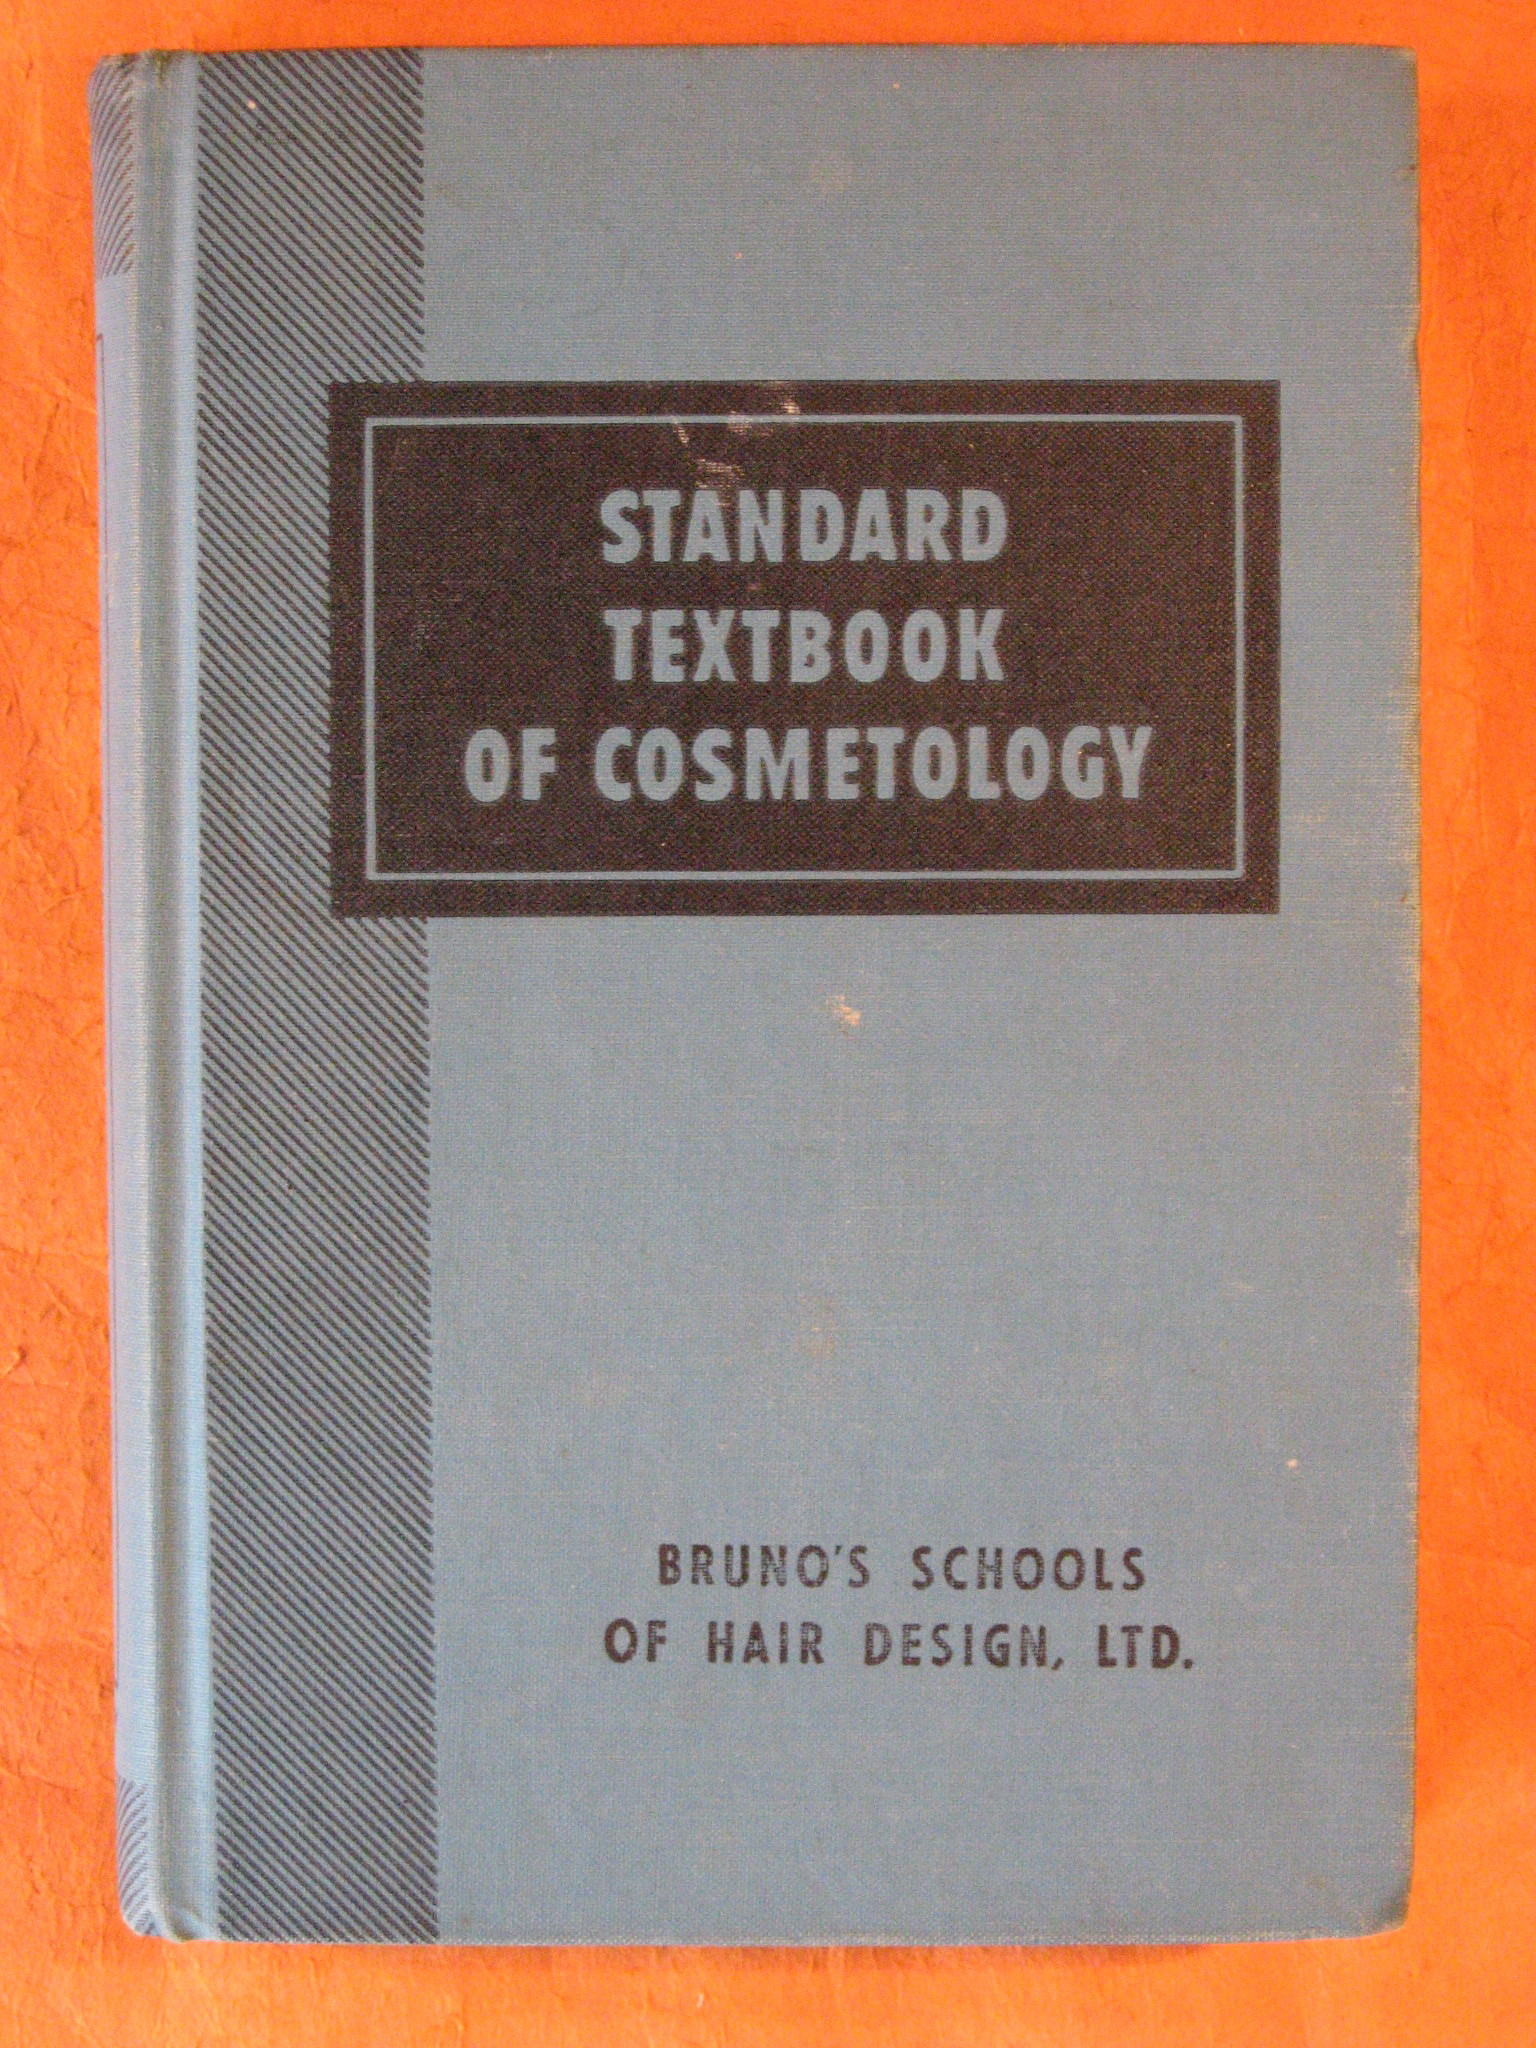 Standard Textbook of Cosmetology:  A Practical Course on the Scientific Fundamentals of Beauty Culture for Students and Practising Cosmetologists